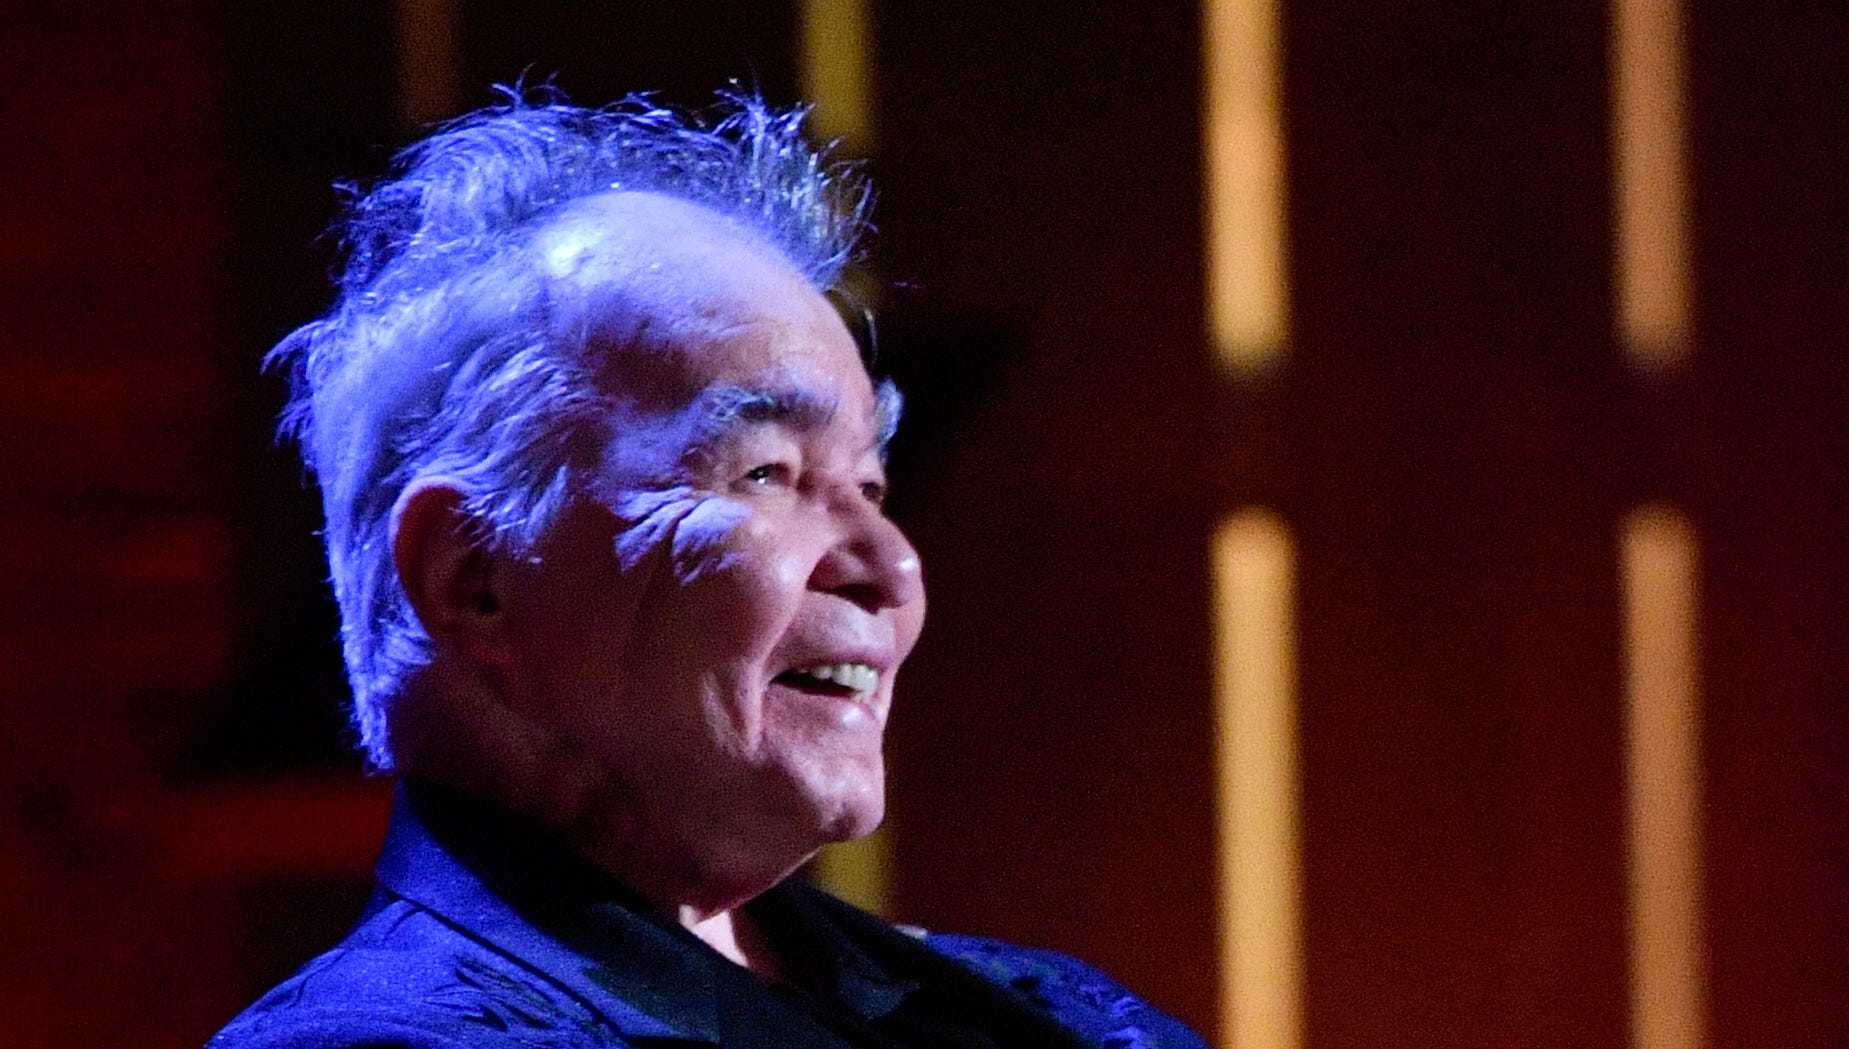 John Prine hospitalized with COVID-19 symptoms; family says 'his situation is critical' 3